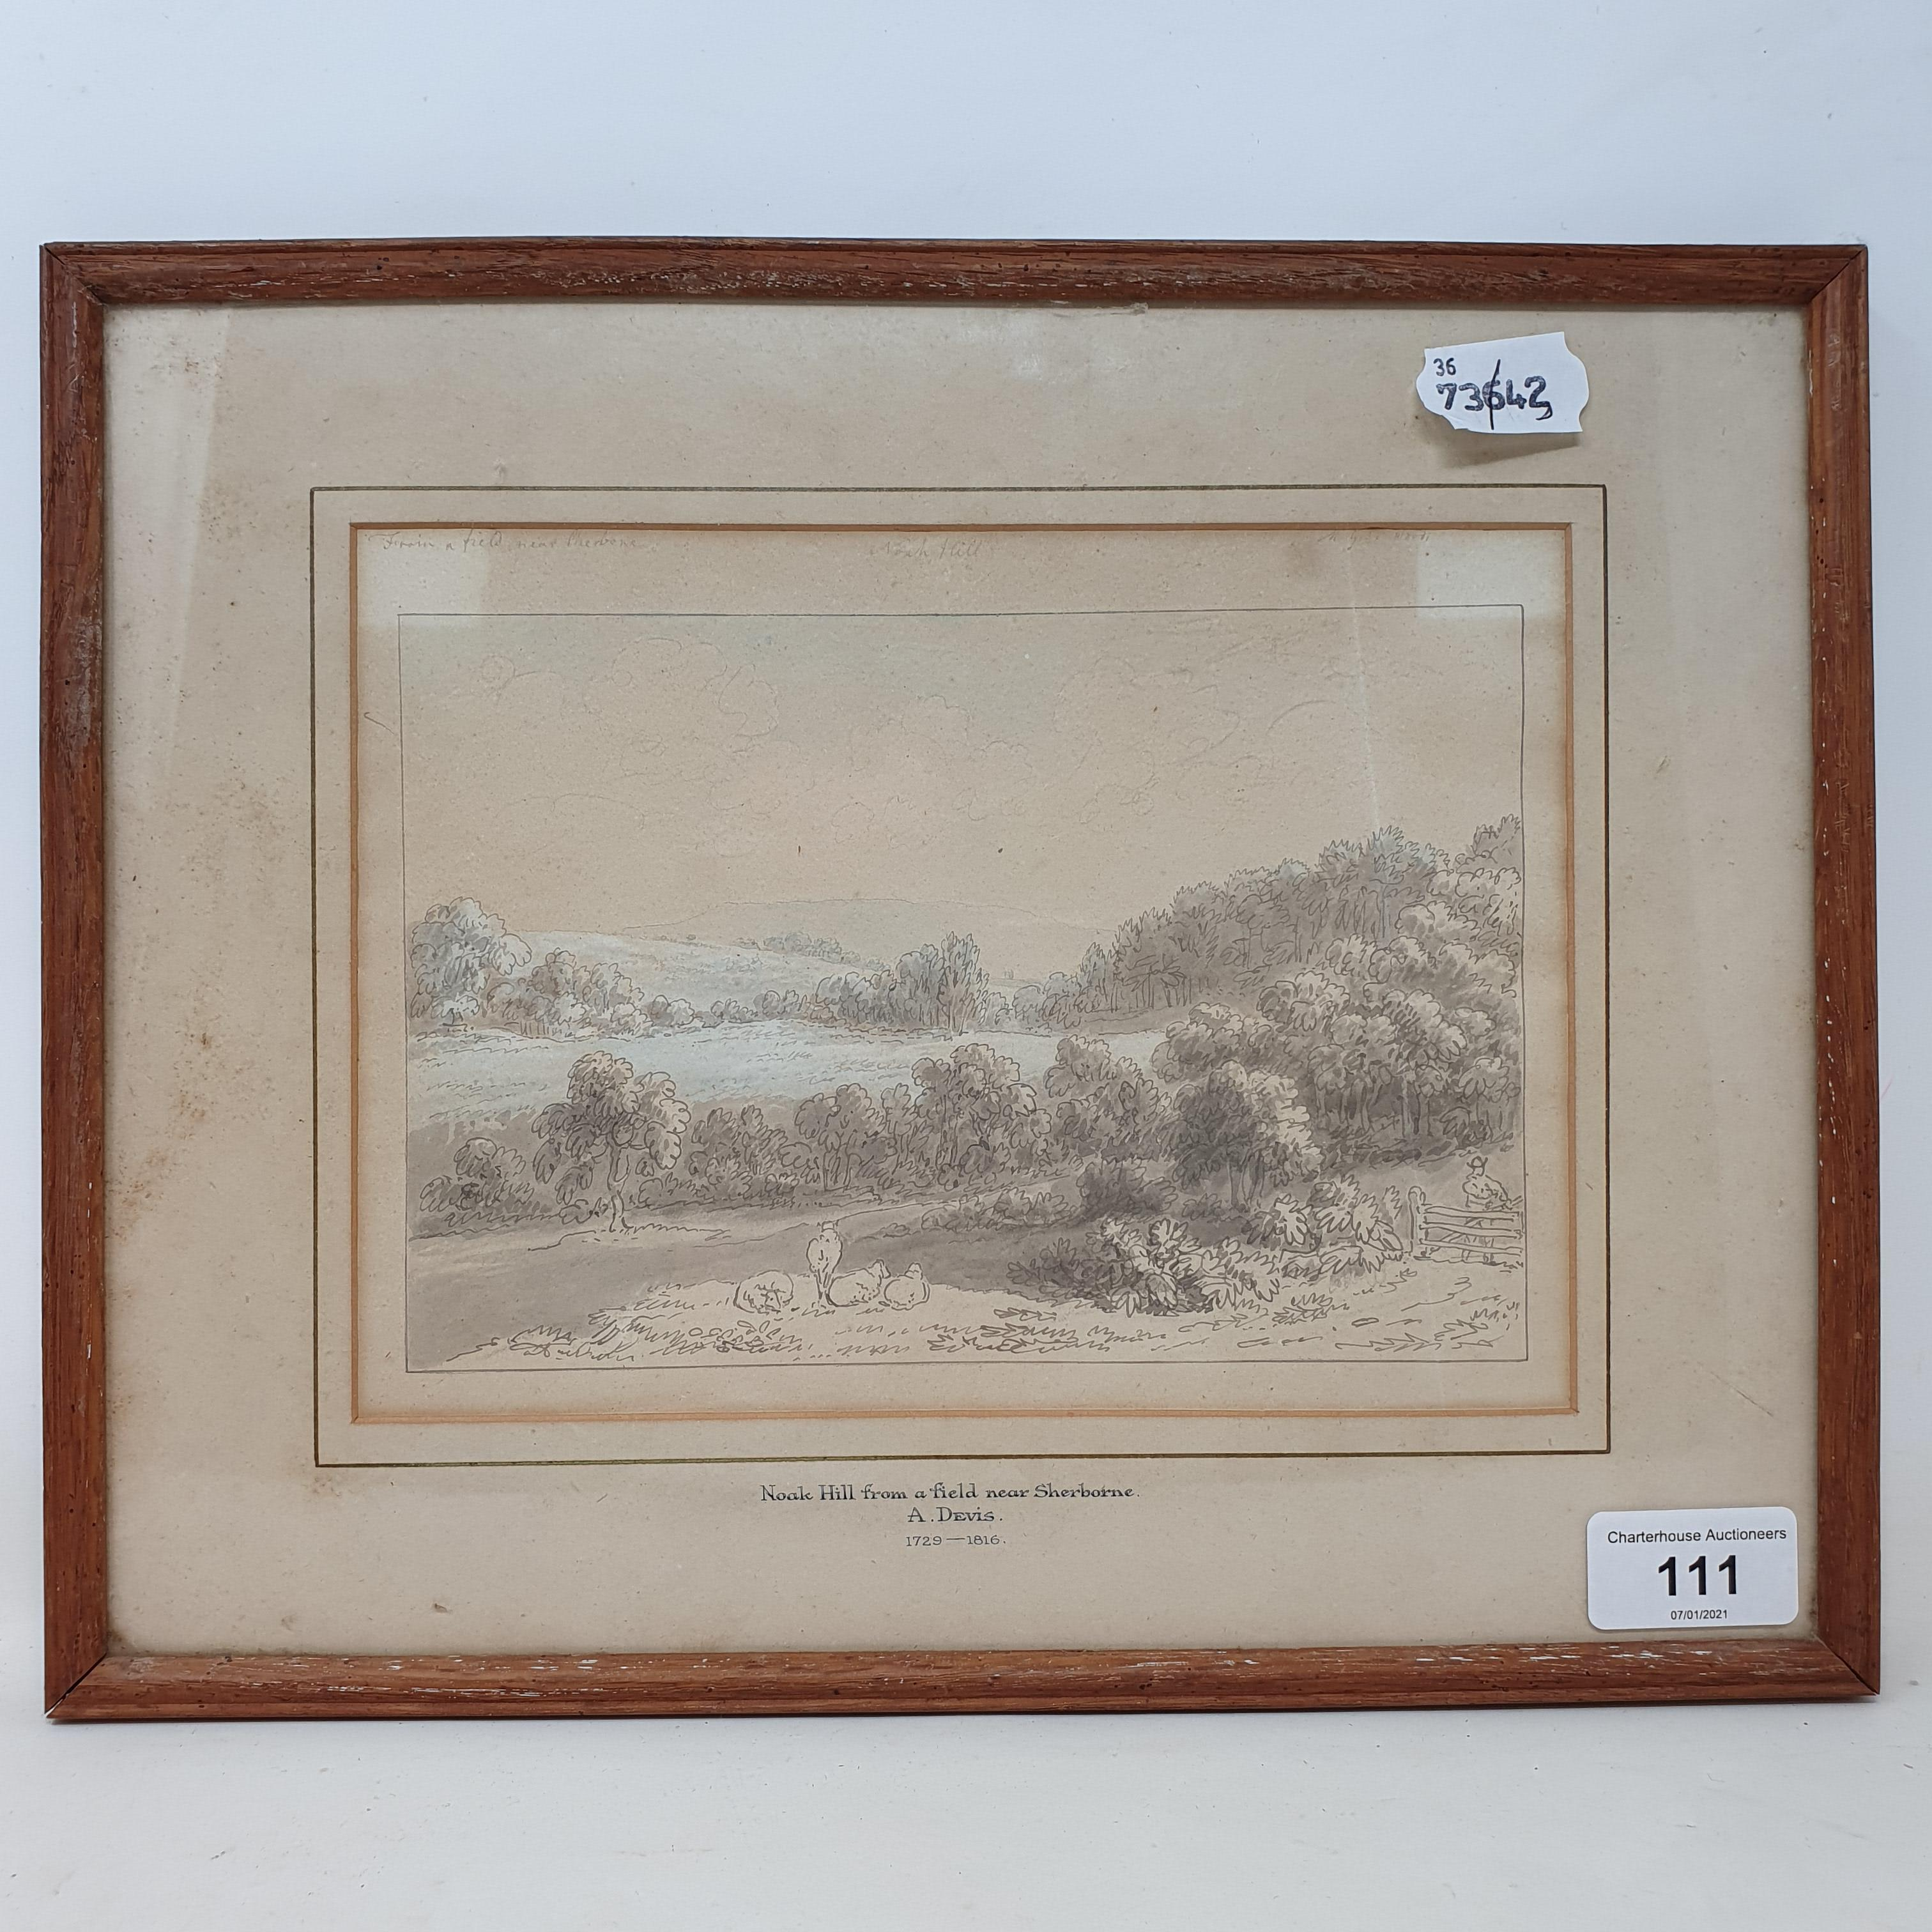 Anthony Thomas Devis (1729-1816/17), Noak Hill from a field near Sherborne, watercolour and - Image 2 of 5